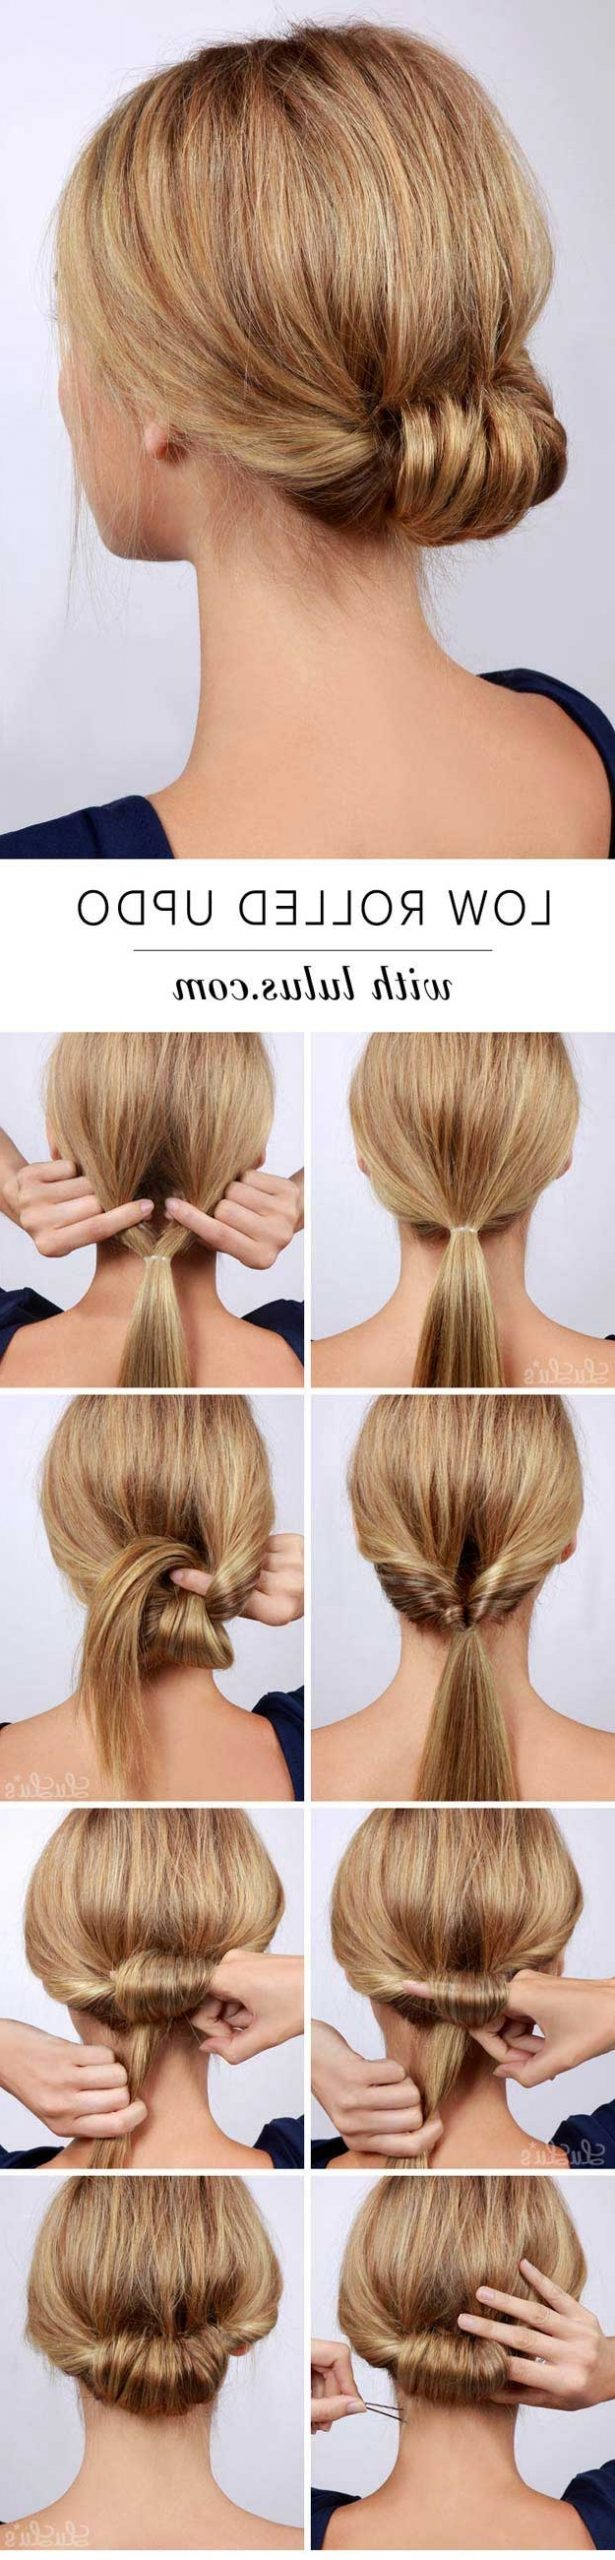 41 Best Hairstyles For Summer The Goddess Pool Hairstyles For Medium Hair